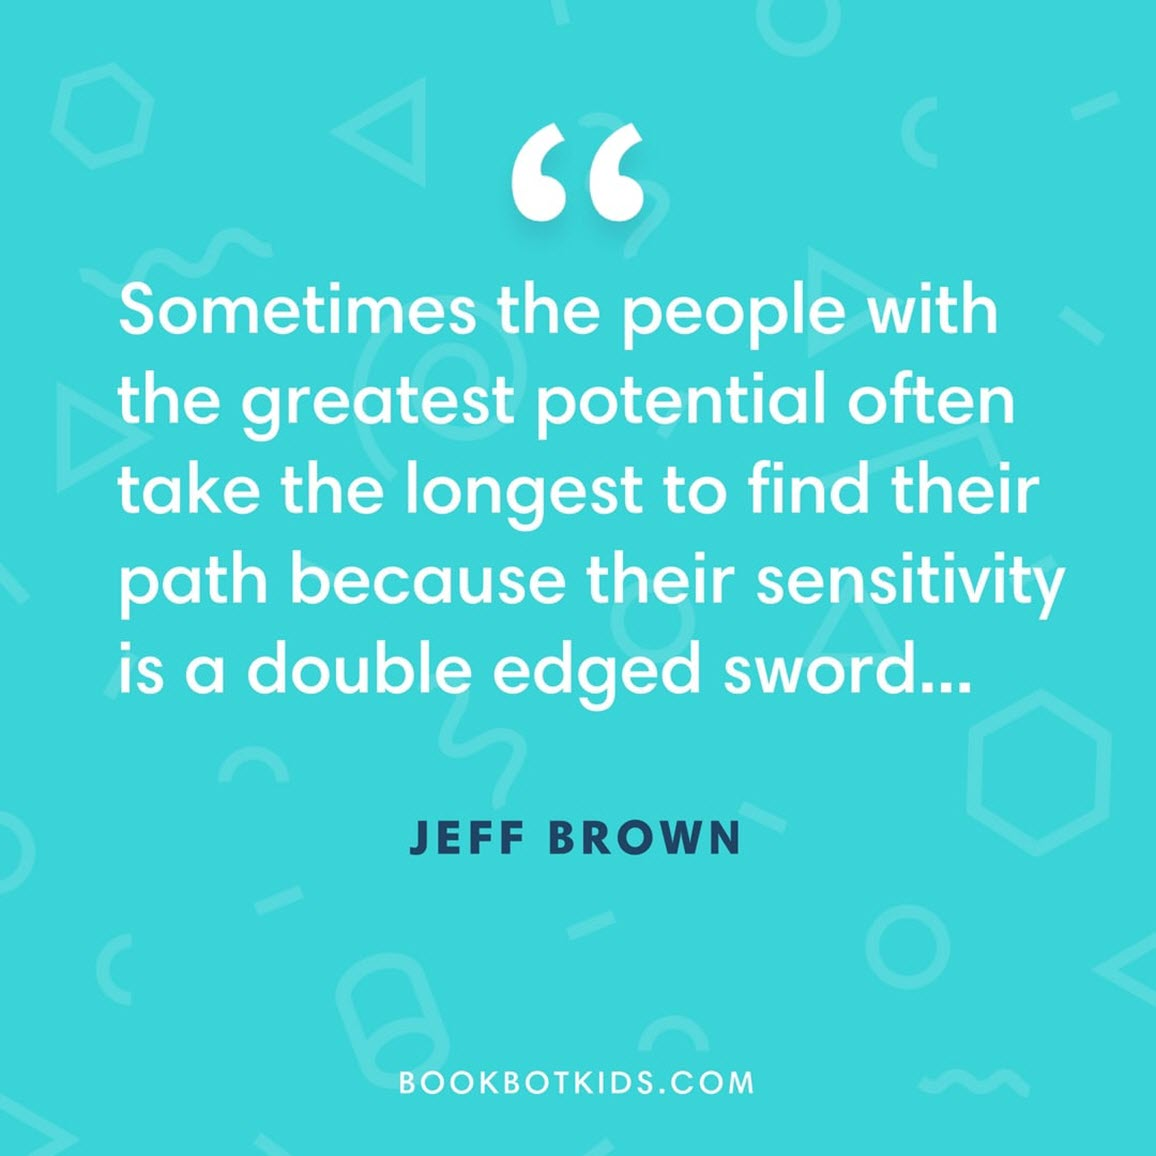 Sometimes the people with the greatest potential often take the longest to find their path because their sensitivity is a double edged sword... – Jeff Brown